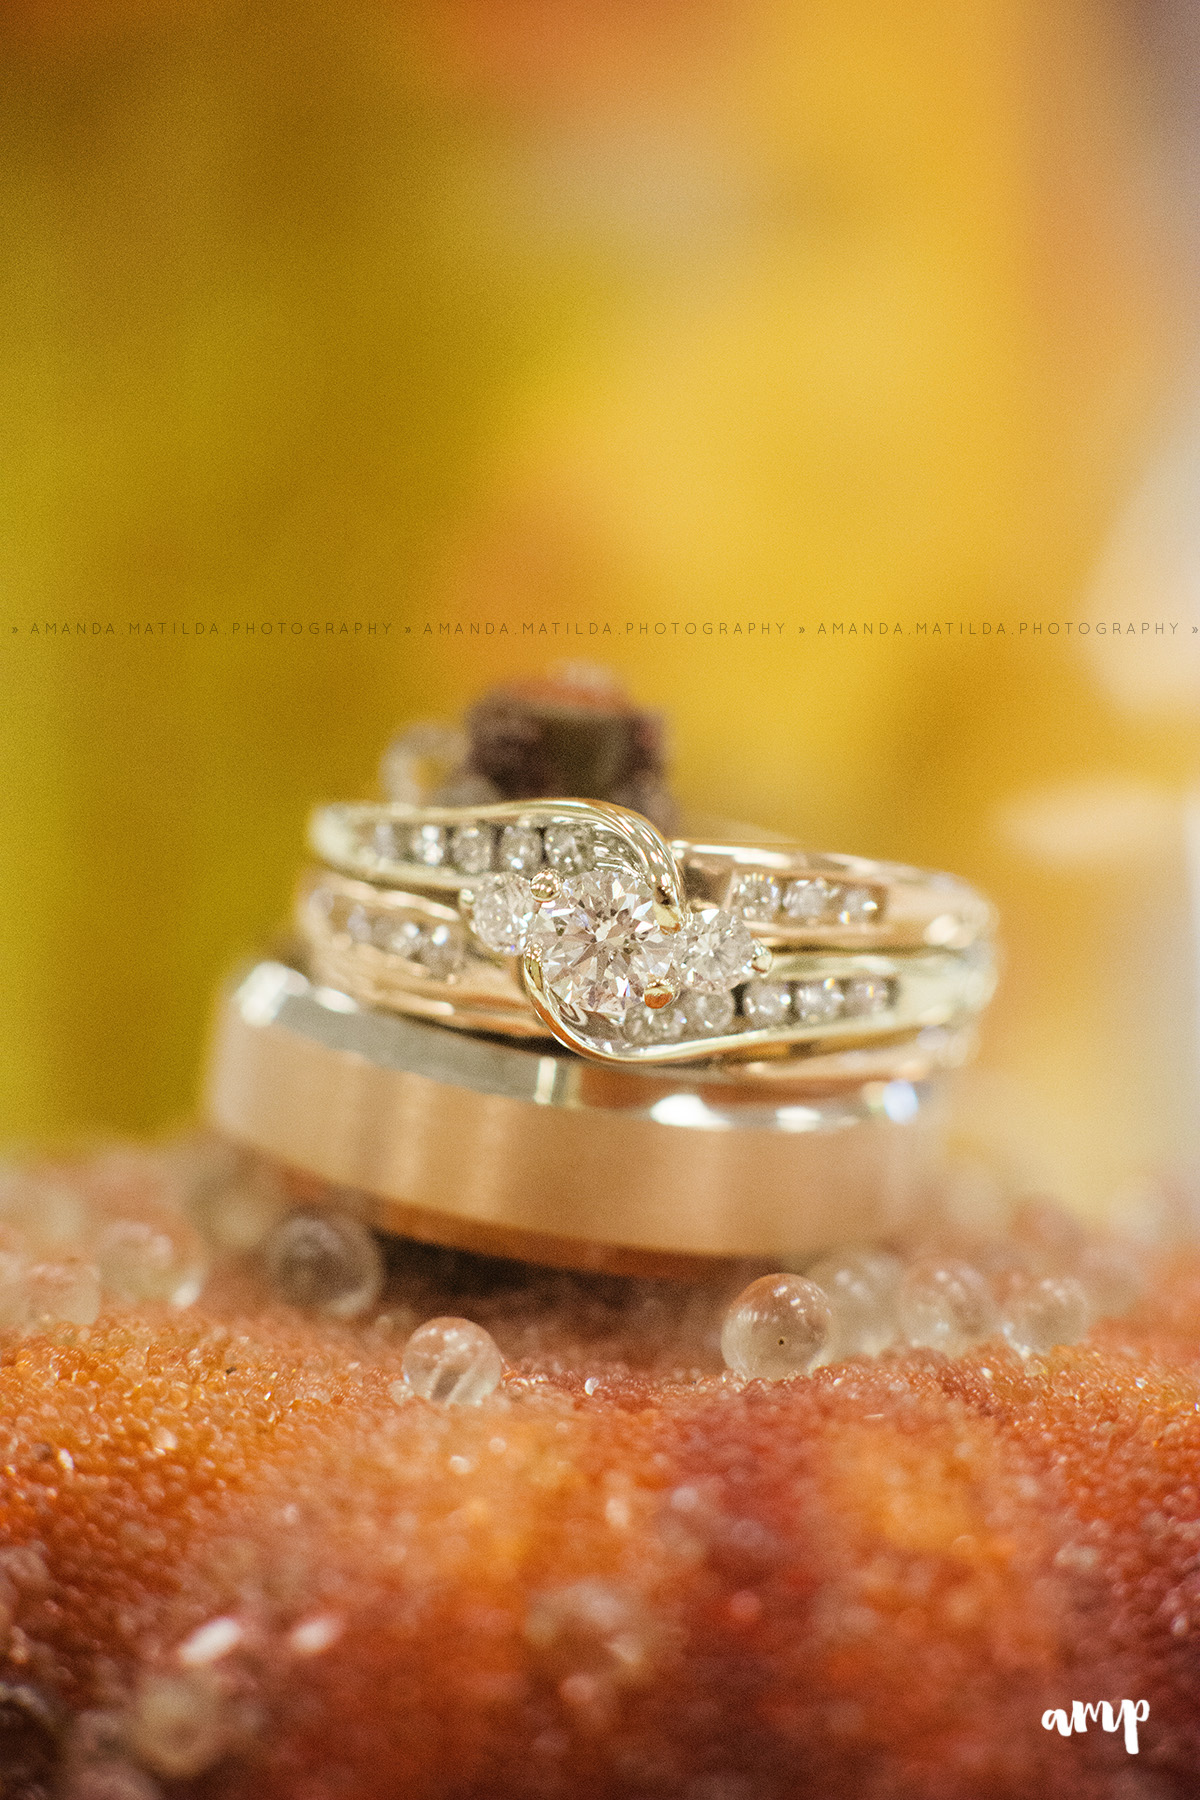 Autumn/Fall Wedding Ring detail shot | Grand Junction Wedding Photographer